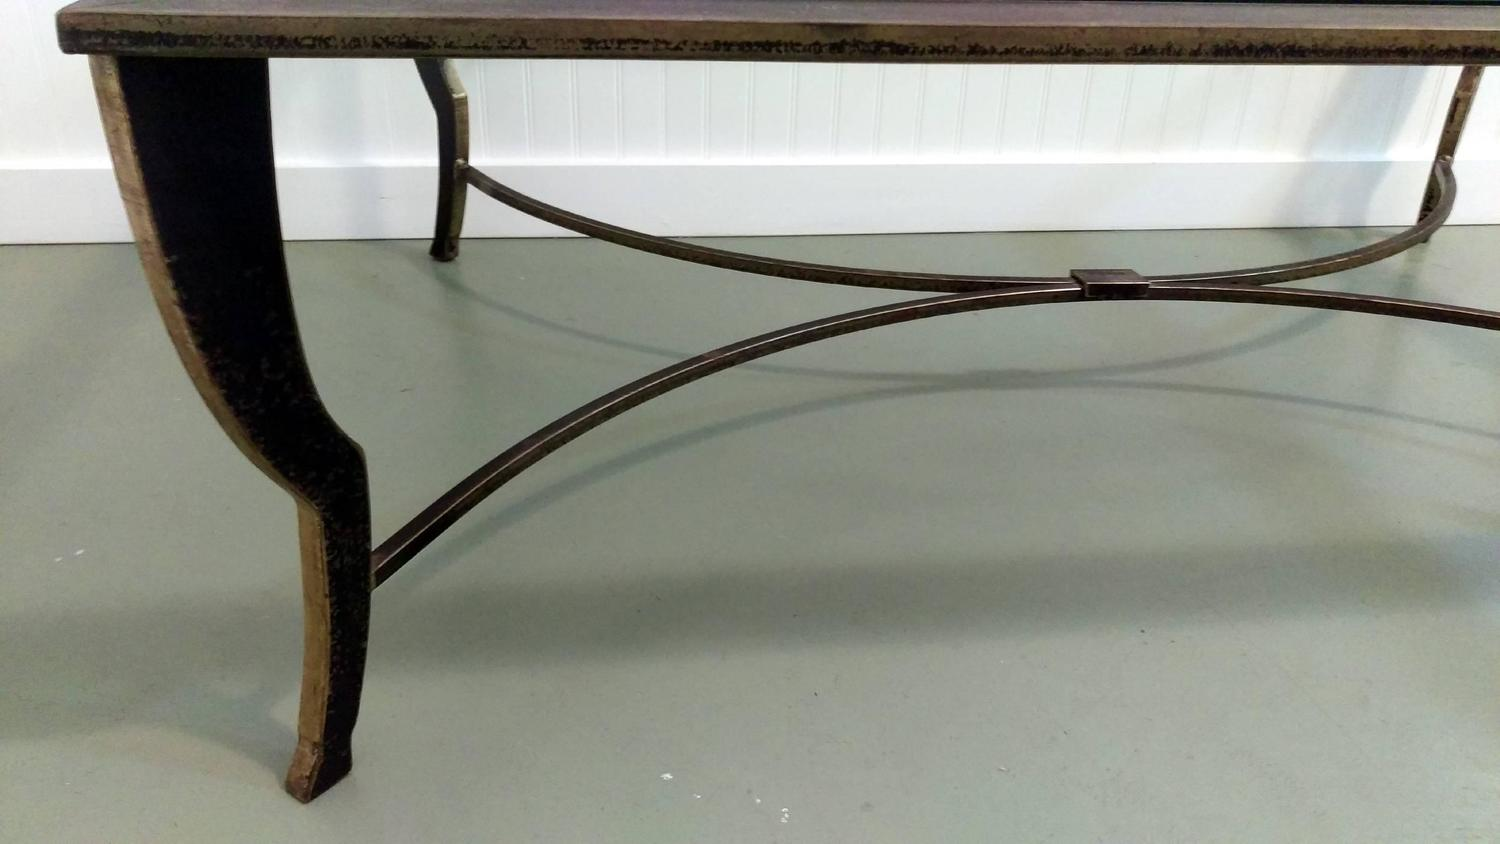 Maison ramsay gilded wrought iron coffee table for sale at for Wrought iron coffee table for sale